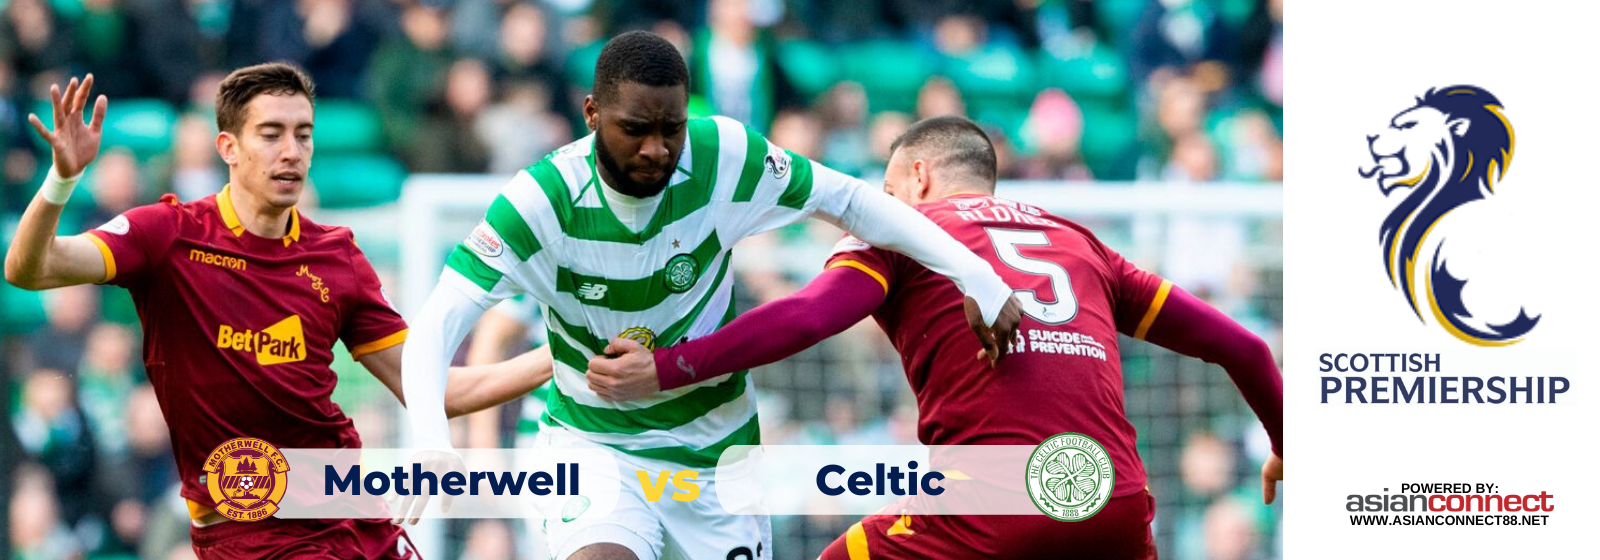 Asianconnect: Motherwell vs Celtic Odds for February 05, 2020